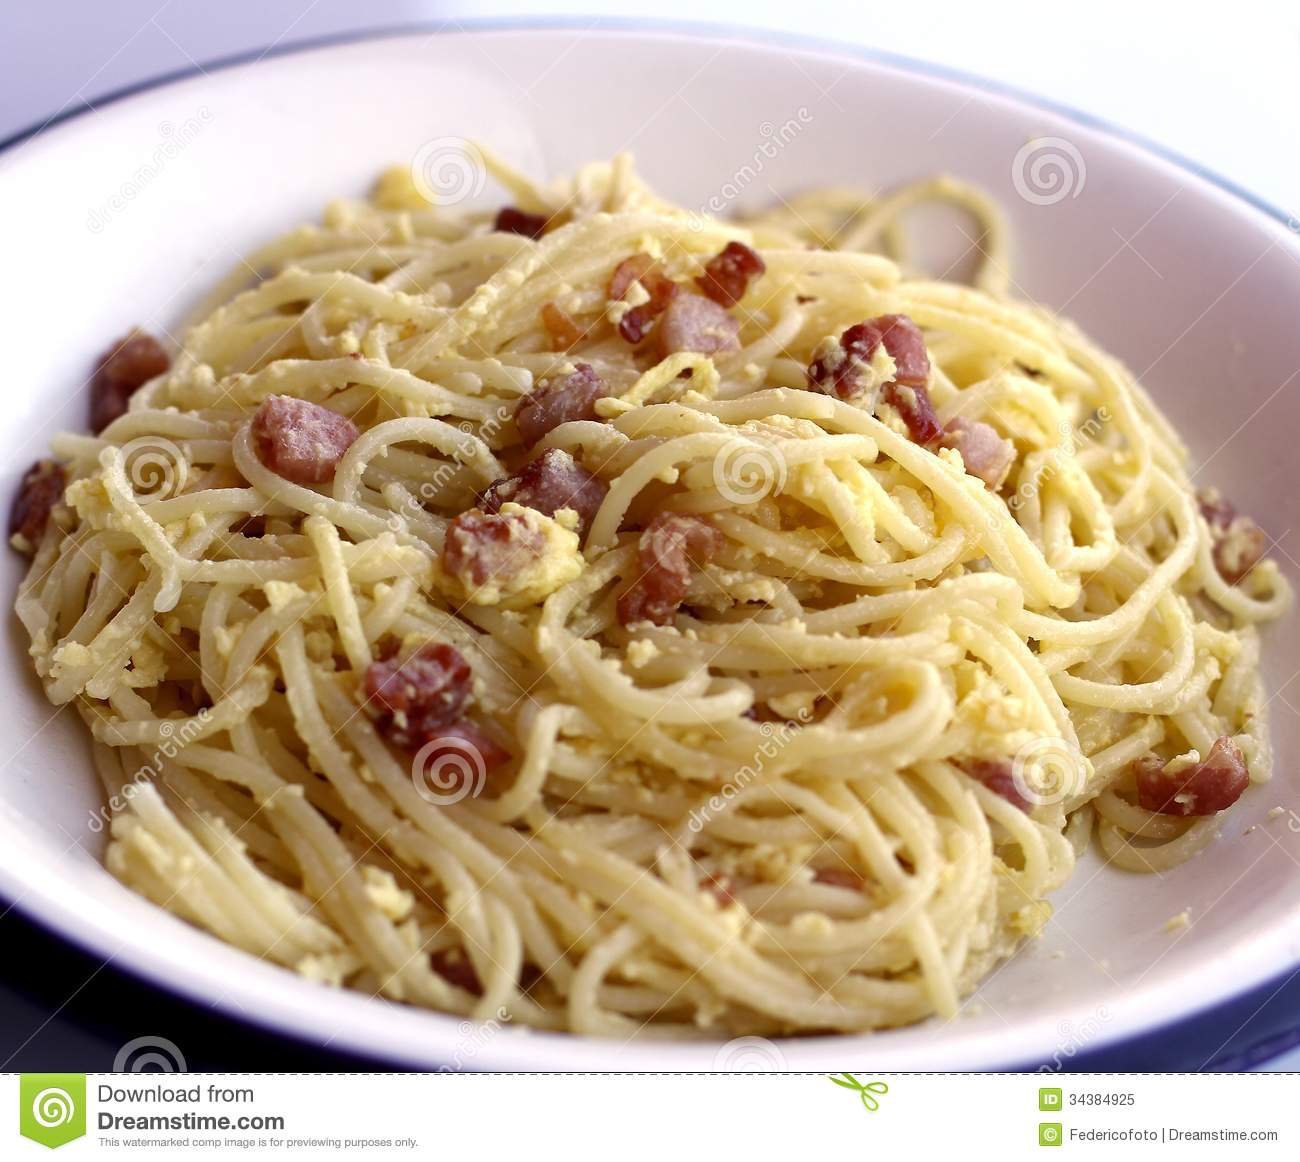 Spaghetti Carbonara With Bacon Egg And Parmesan In A Typical Ita.